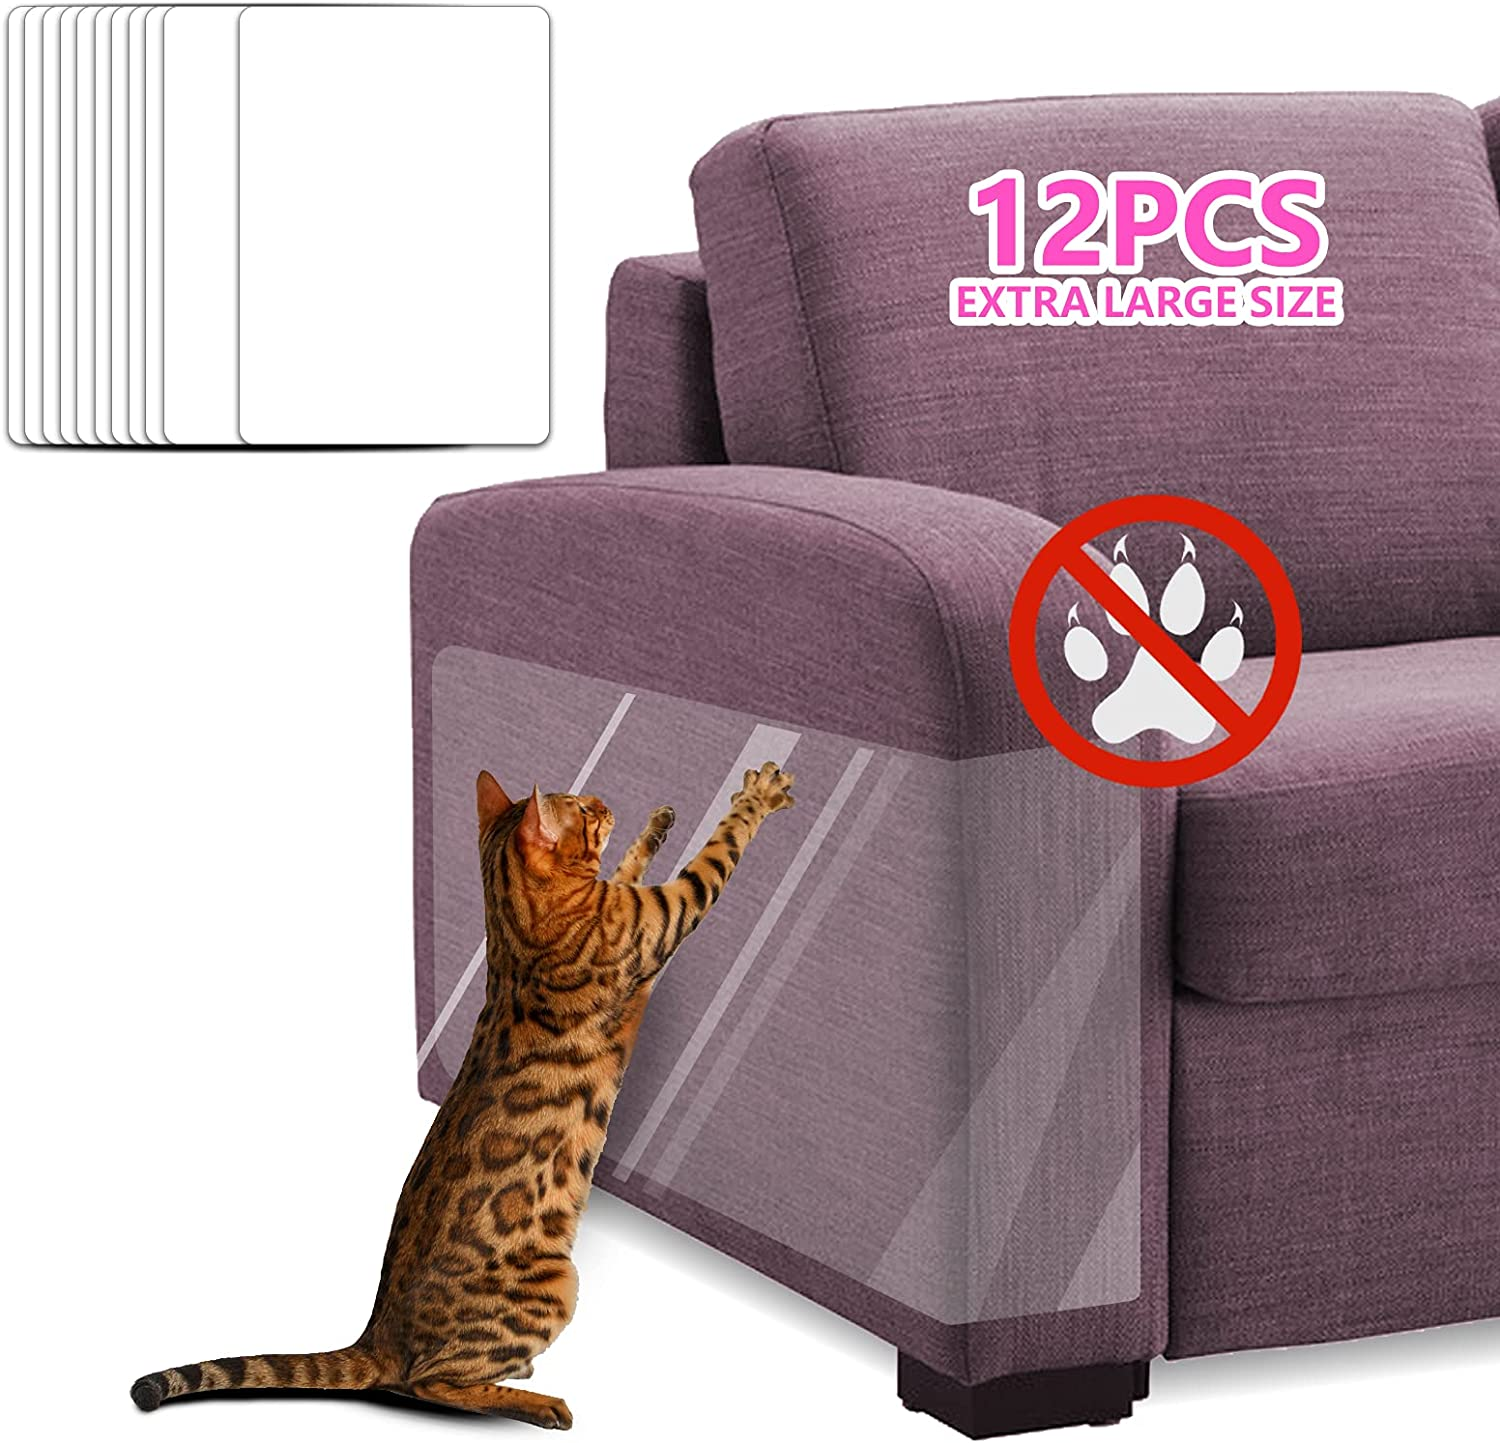 ECOCONUT Pet Couch Protector, 12PCS XL Clear Cat Dog Claw Guards Pads, Discreet Cat Scratch Furniture Protector Pad, Furniture Protectors-Training Tape, Cover Protect Couch,Door,Walls,Mattress,Carpet